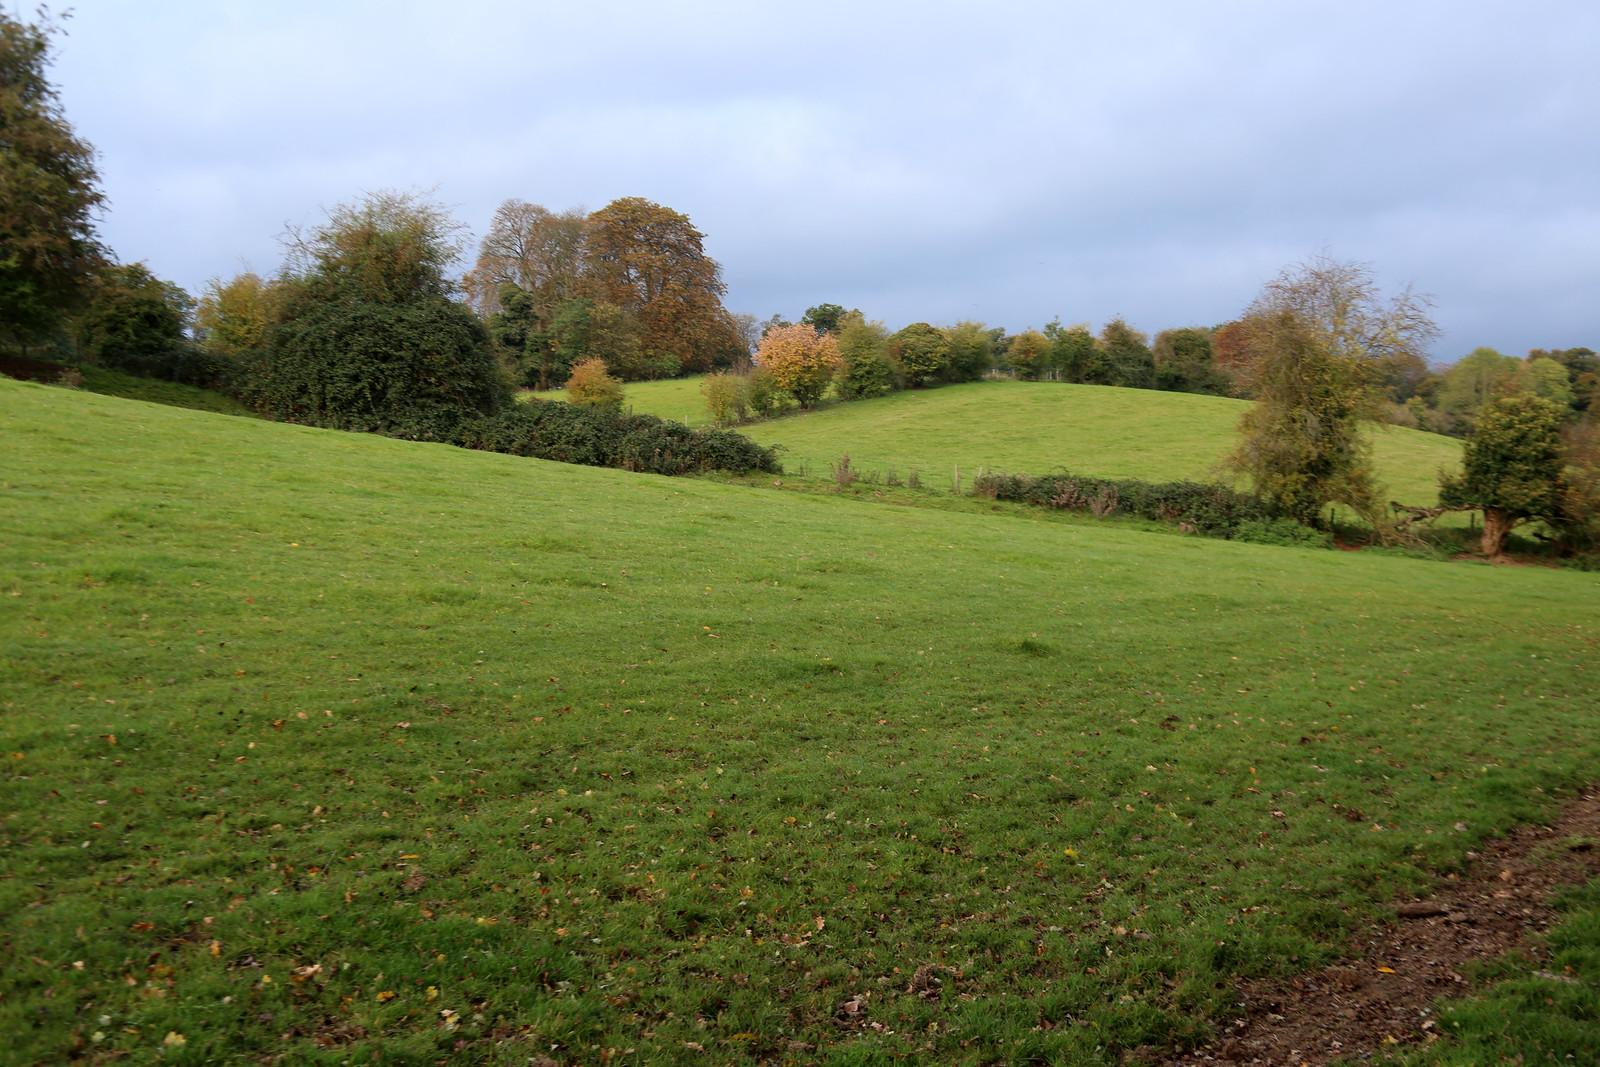 Footpath between Henley-on-Thames and Rotherfield Greys